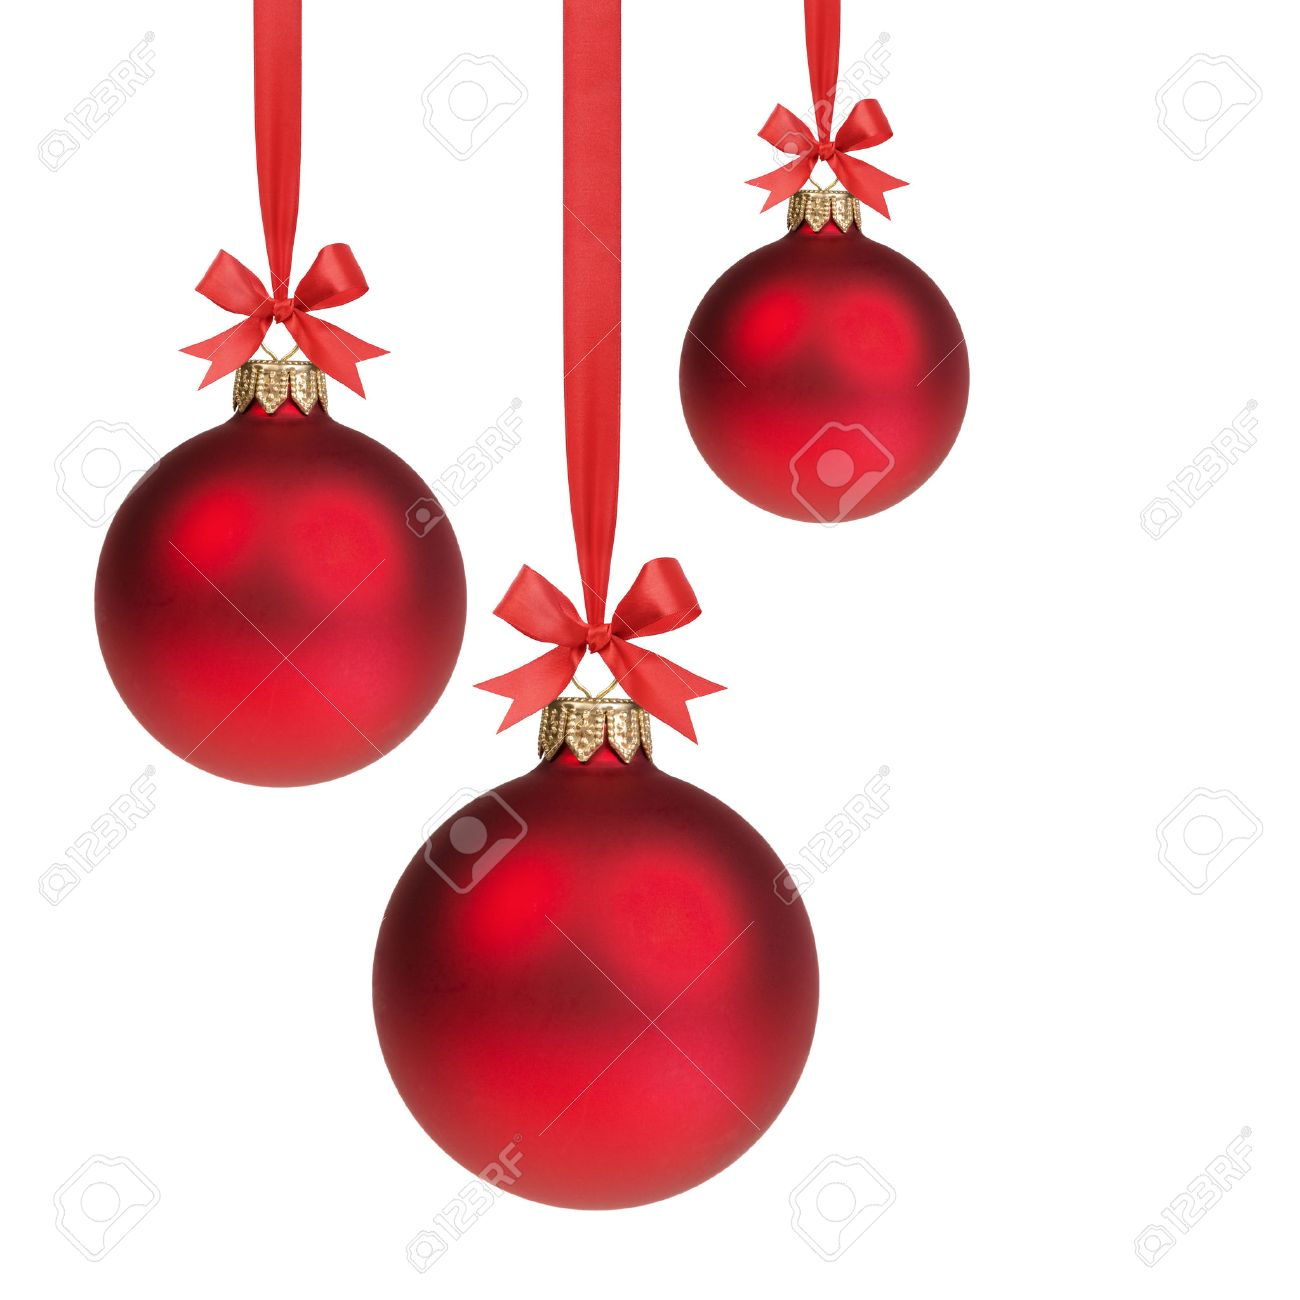 Three Red Christmas Balls Hanging On Ribbon With Bows, Isolated ...